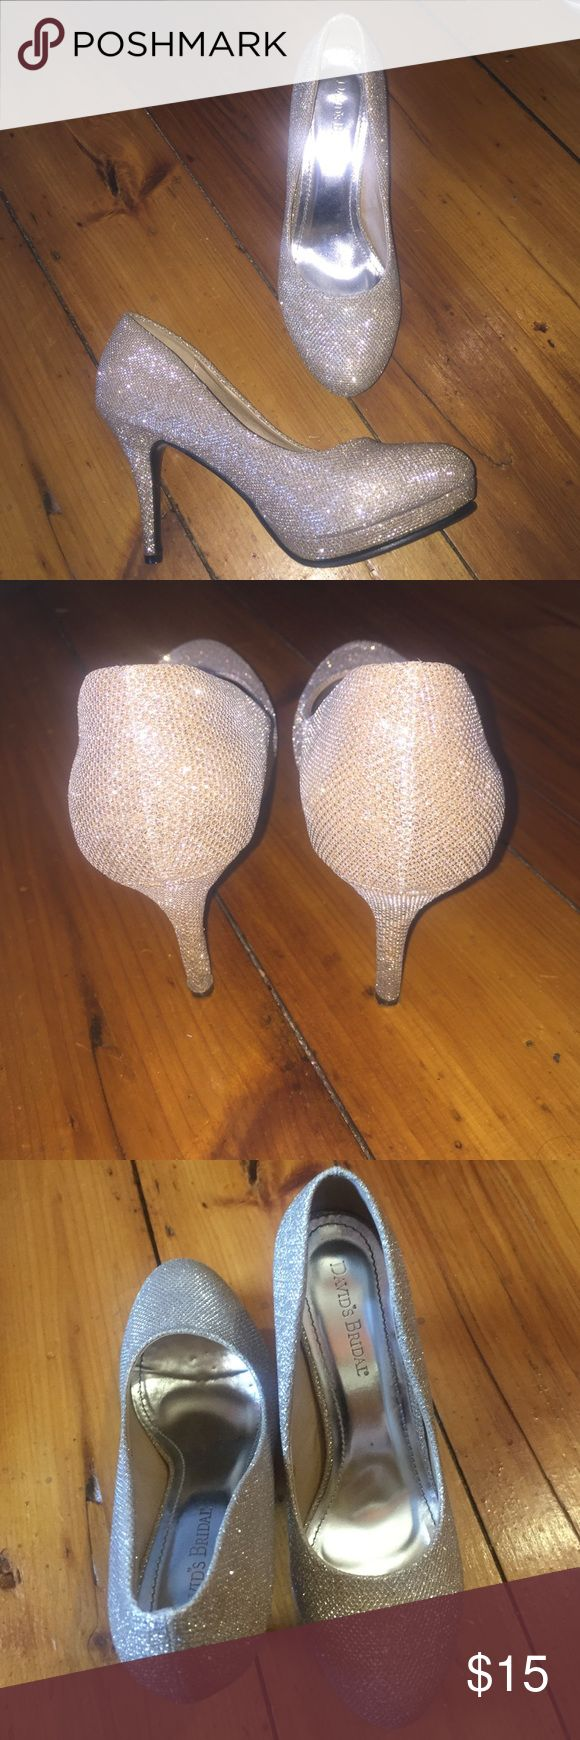 Champagne Prom Wedding Homecoming Heels Worn twice, so they are in excellent condition! David's Bridal Shoes Heels